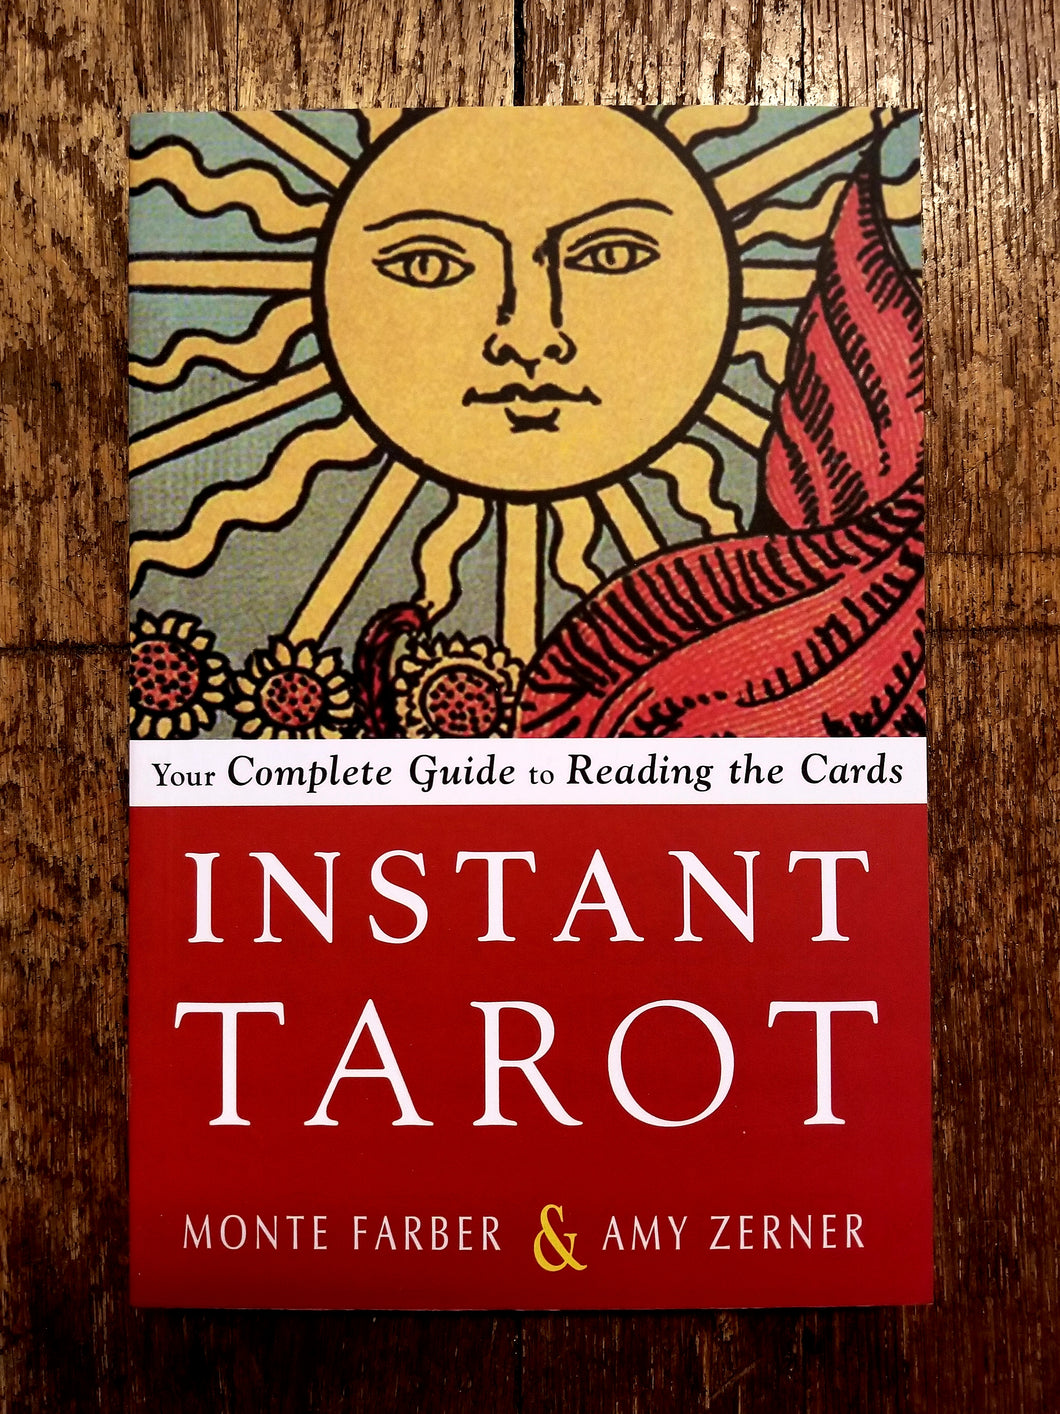 Instant Tarot: Your Complete Guide to Reading the Cards by Monte Farber and Amy Zerner